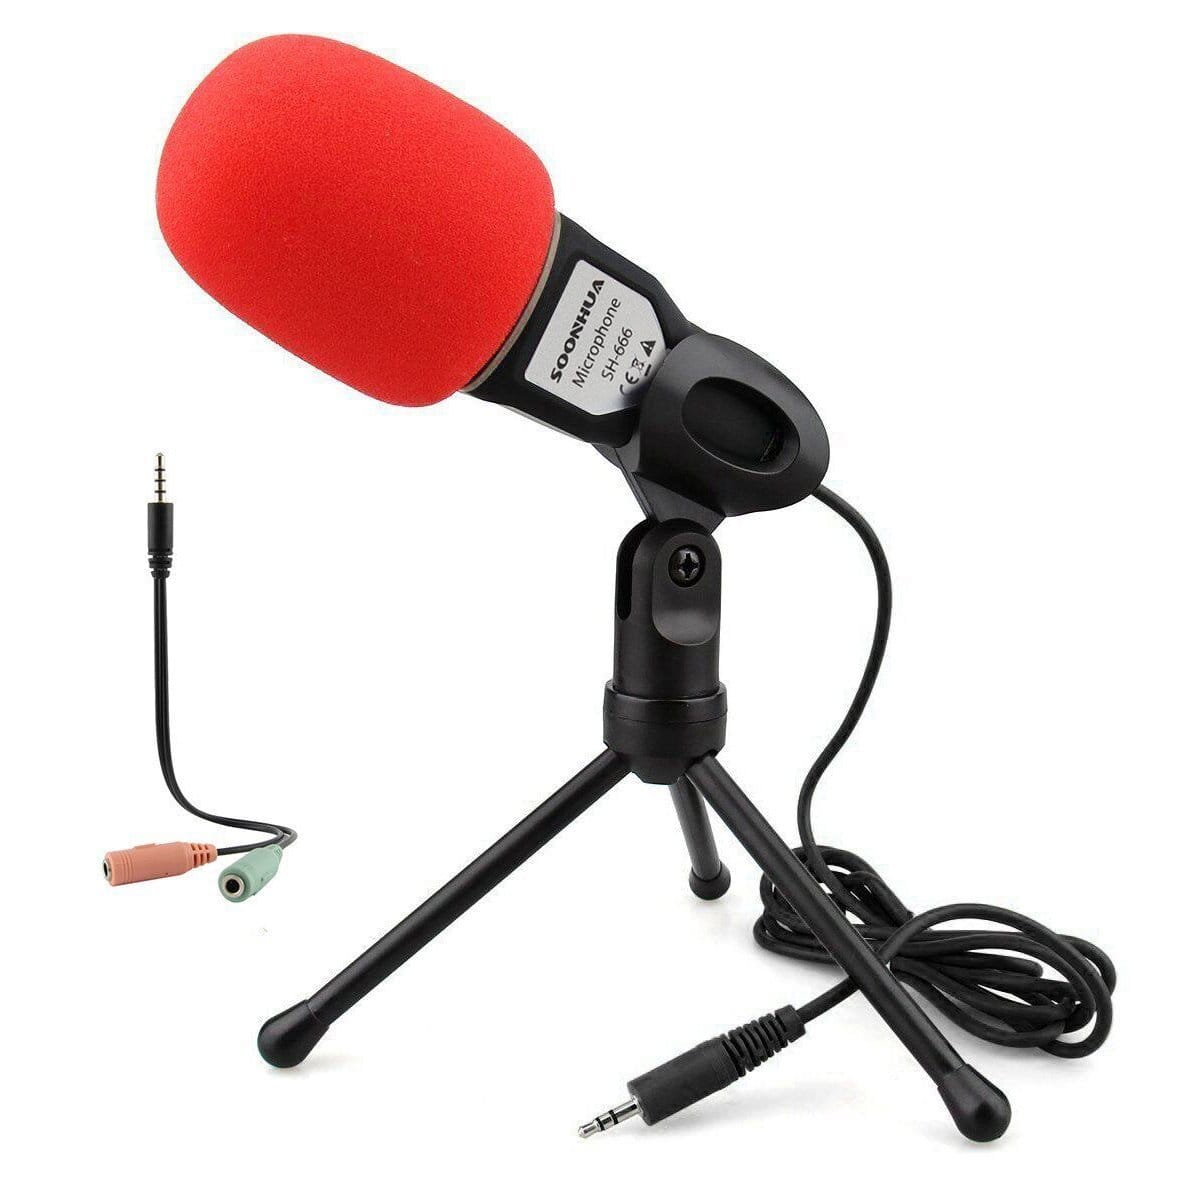 Professional Sound Microphone With Stand for PC Laptop on Amazon for $10.49 after discounted code - FS with prime